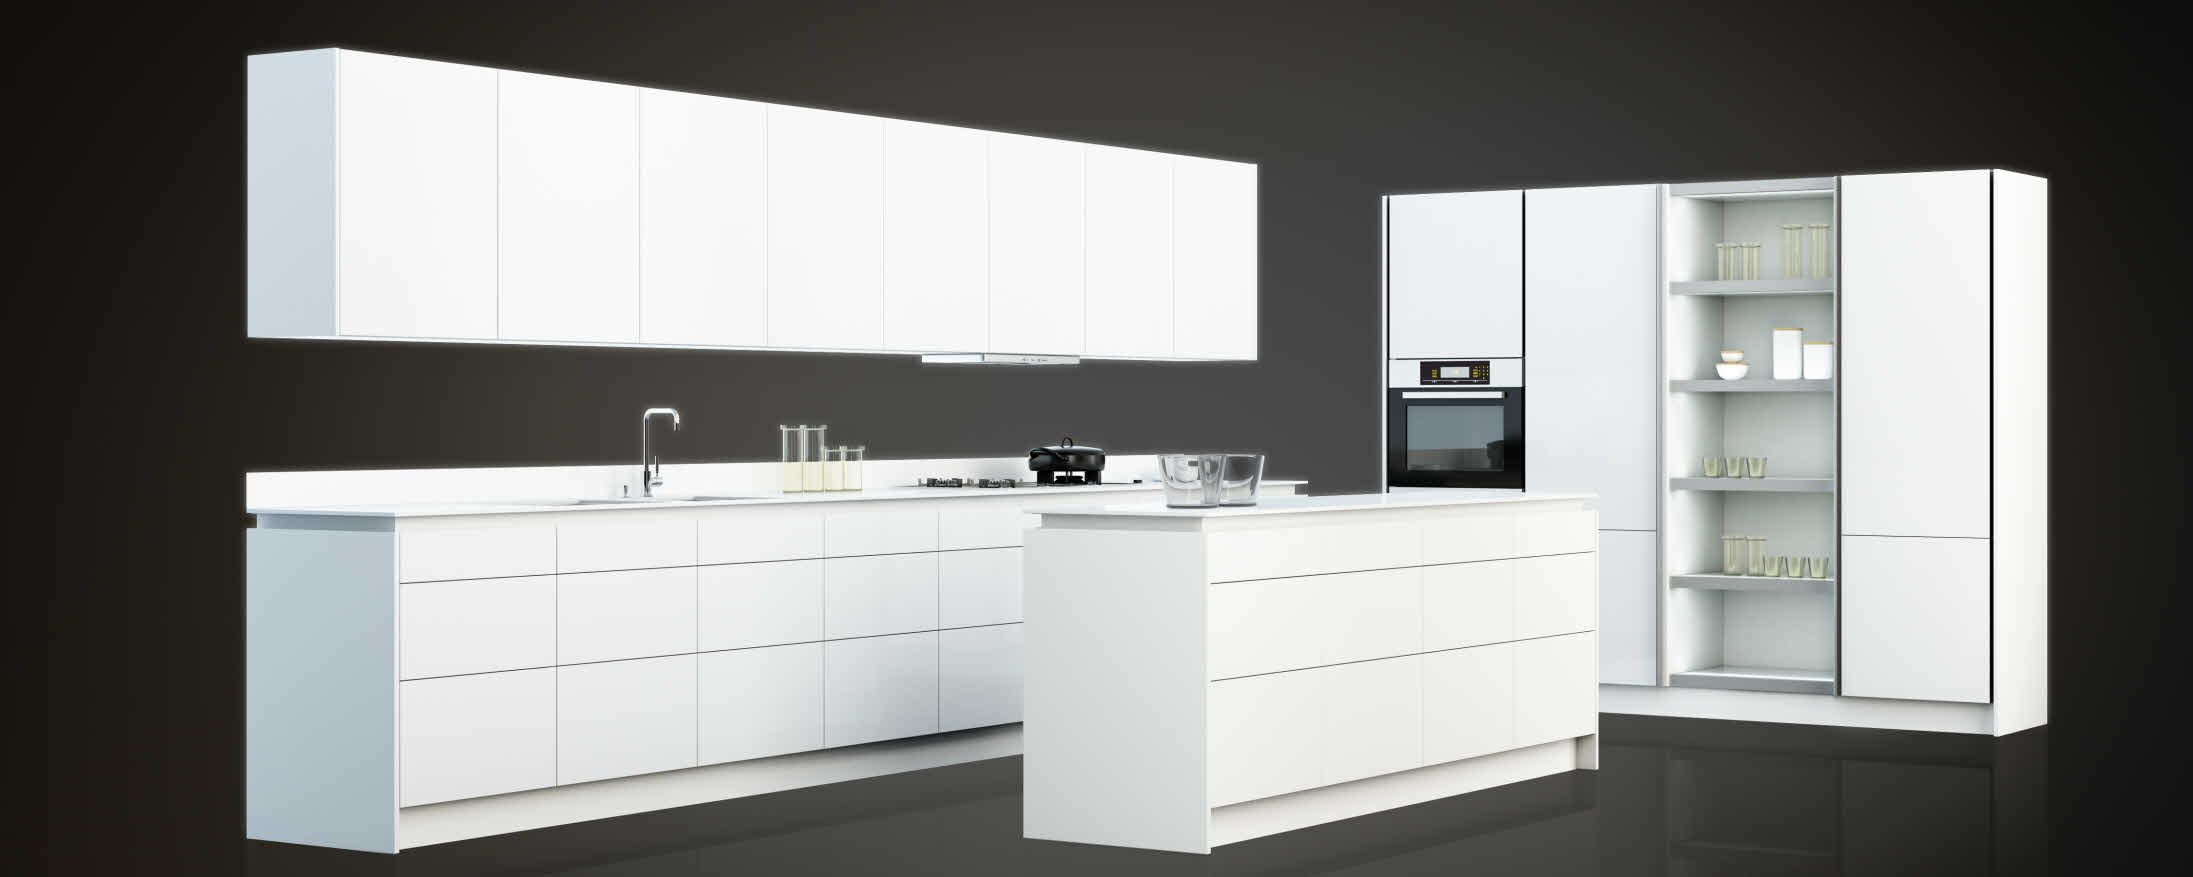 designer kitchens and beyond kitchens and beyond poggenpohl kitchens offer exclusive 609